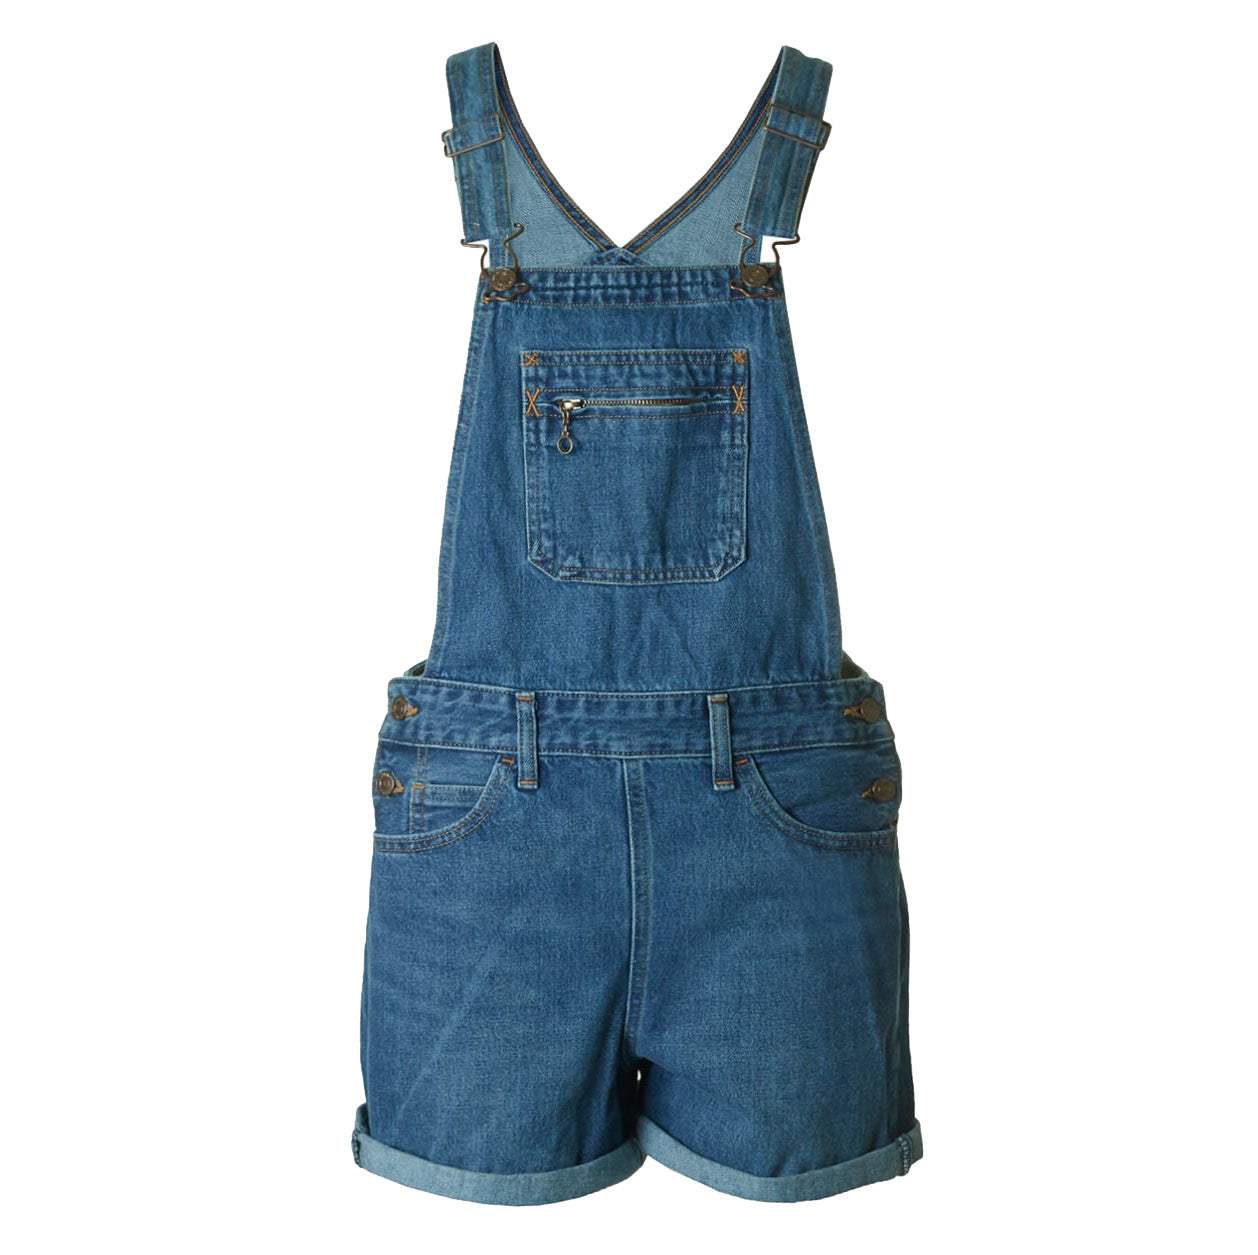 Levi's Orange Tab Shortalls <p>Crazy Venture